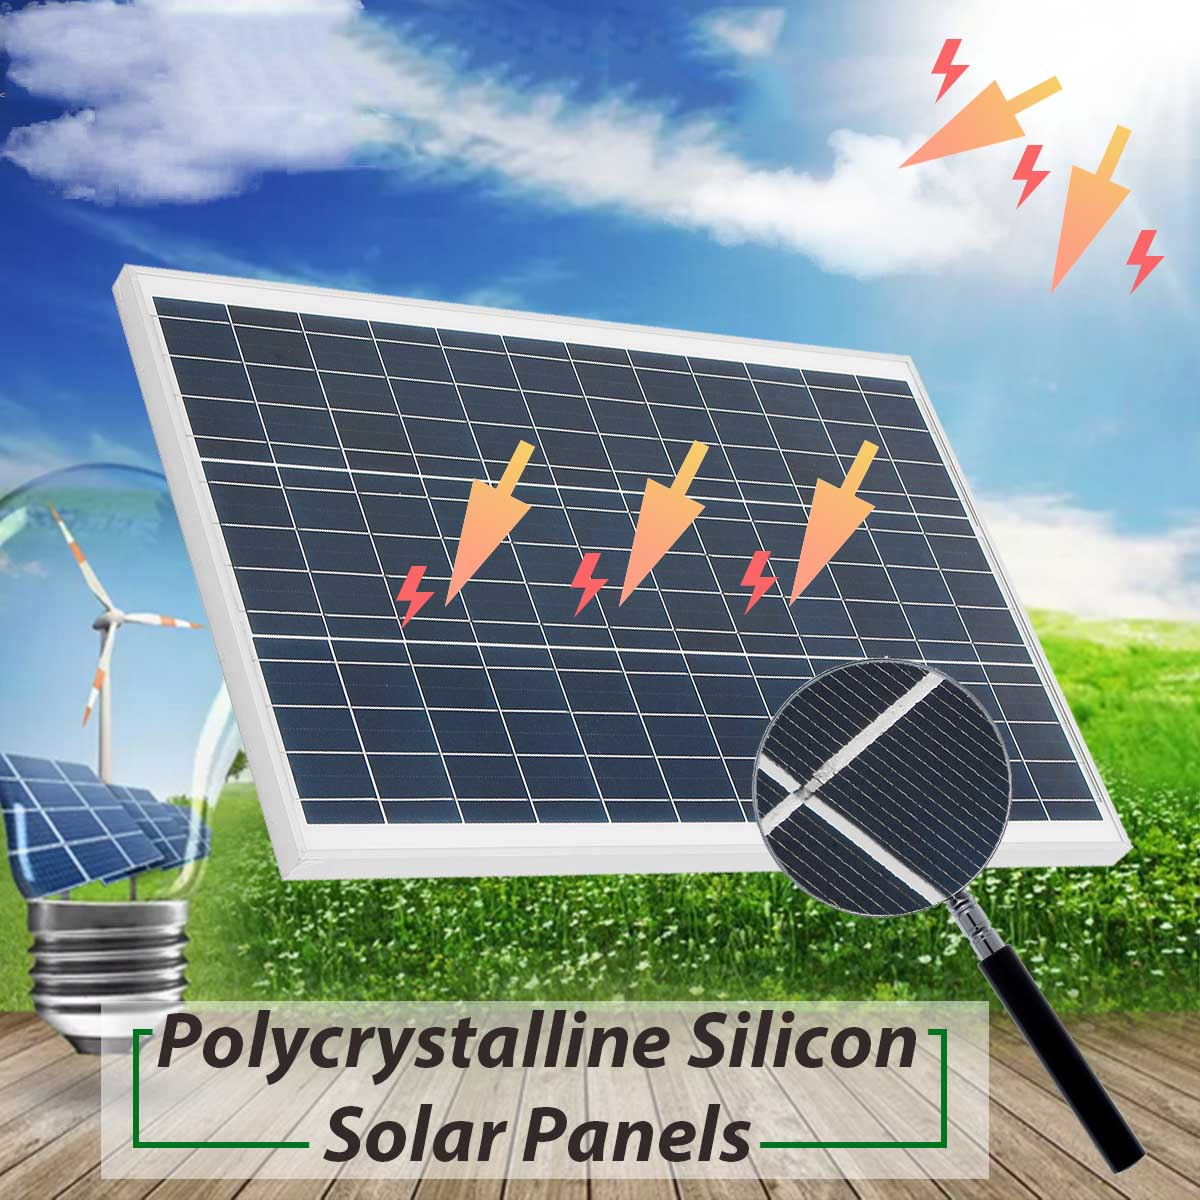 KINCO 50w 18v Polycrystalline Silicon Solar Panel With Glass Bearing Plate Suitable For Different Solar Applicances Supply